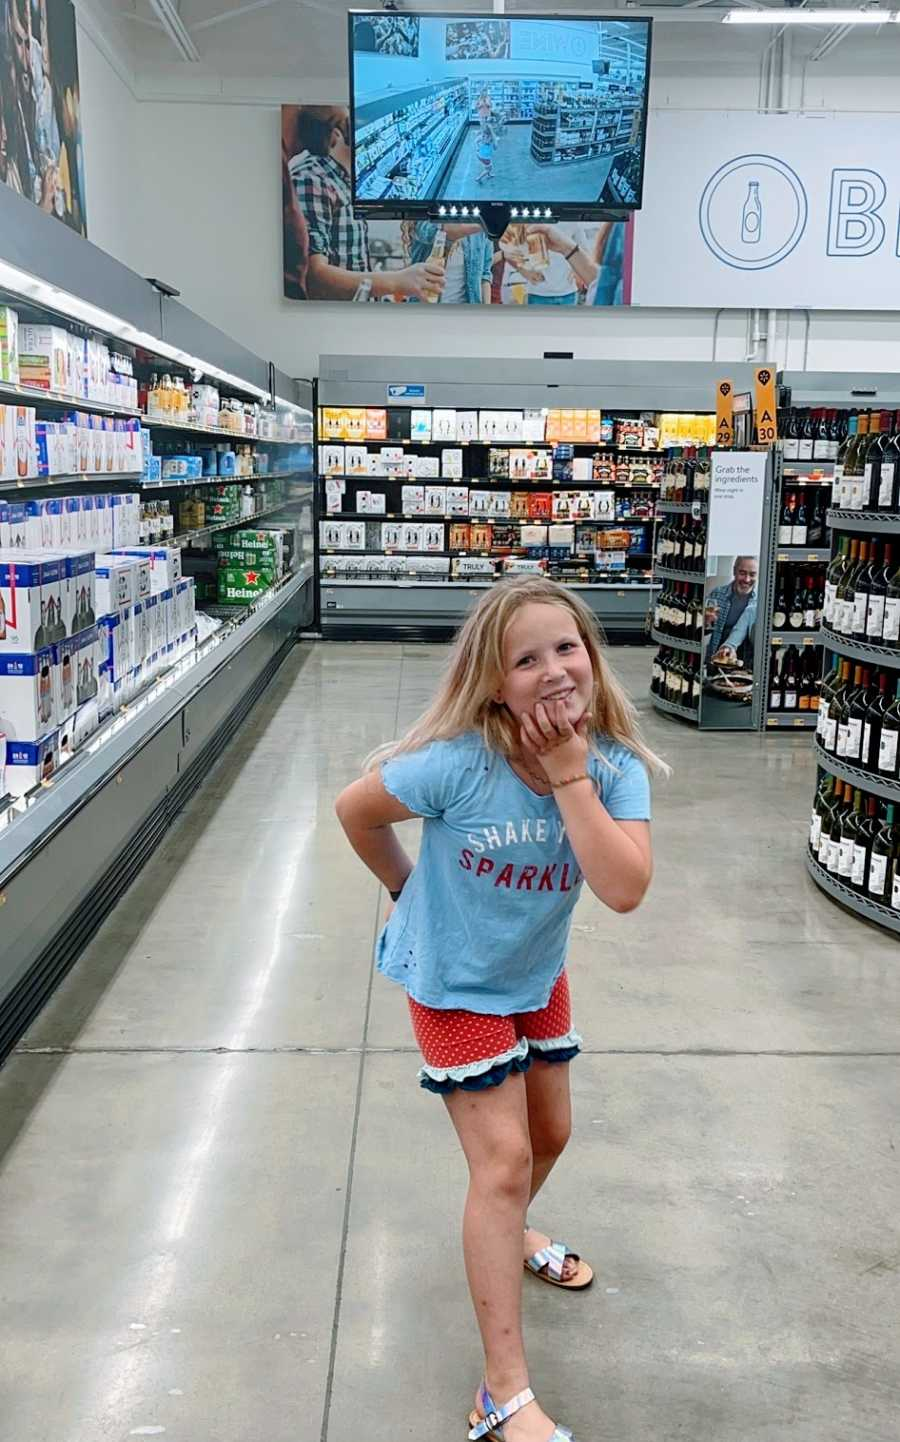 A little girl poses in the grocery store